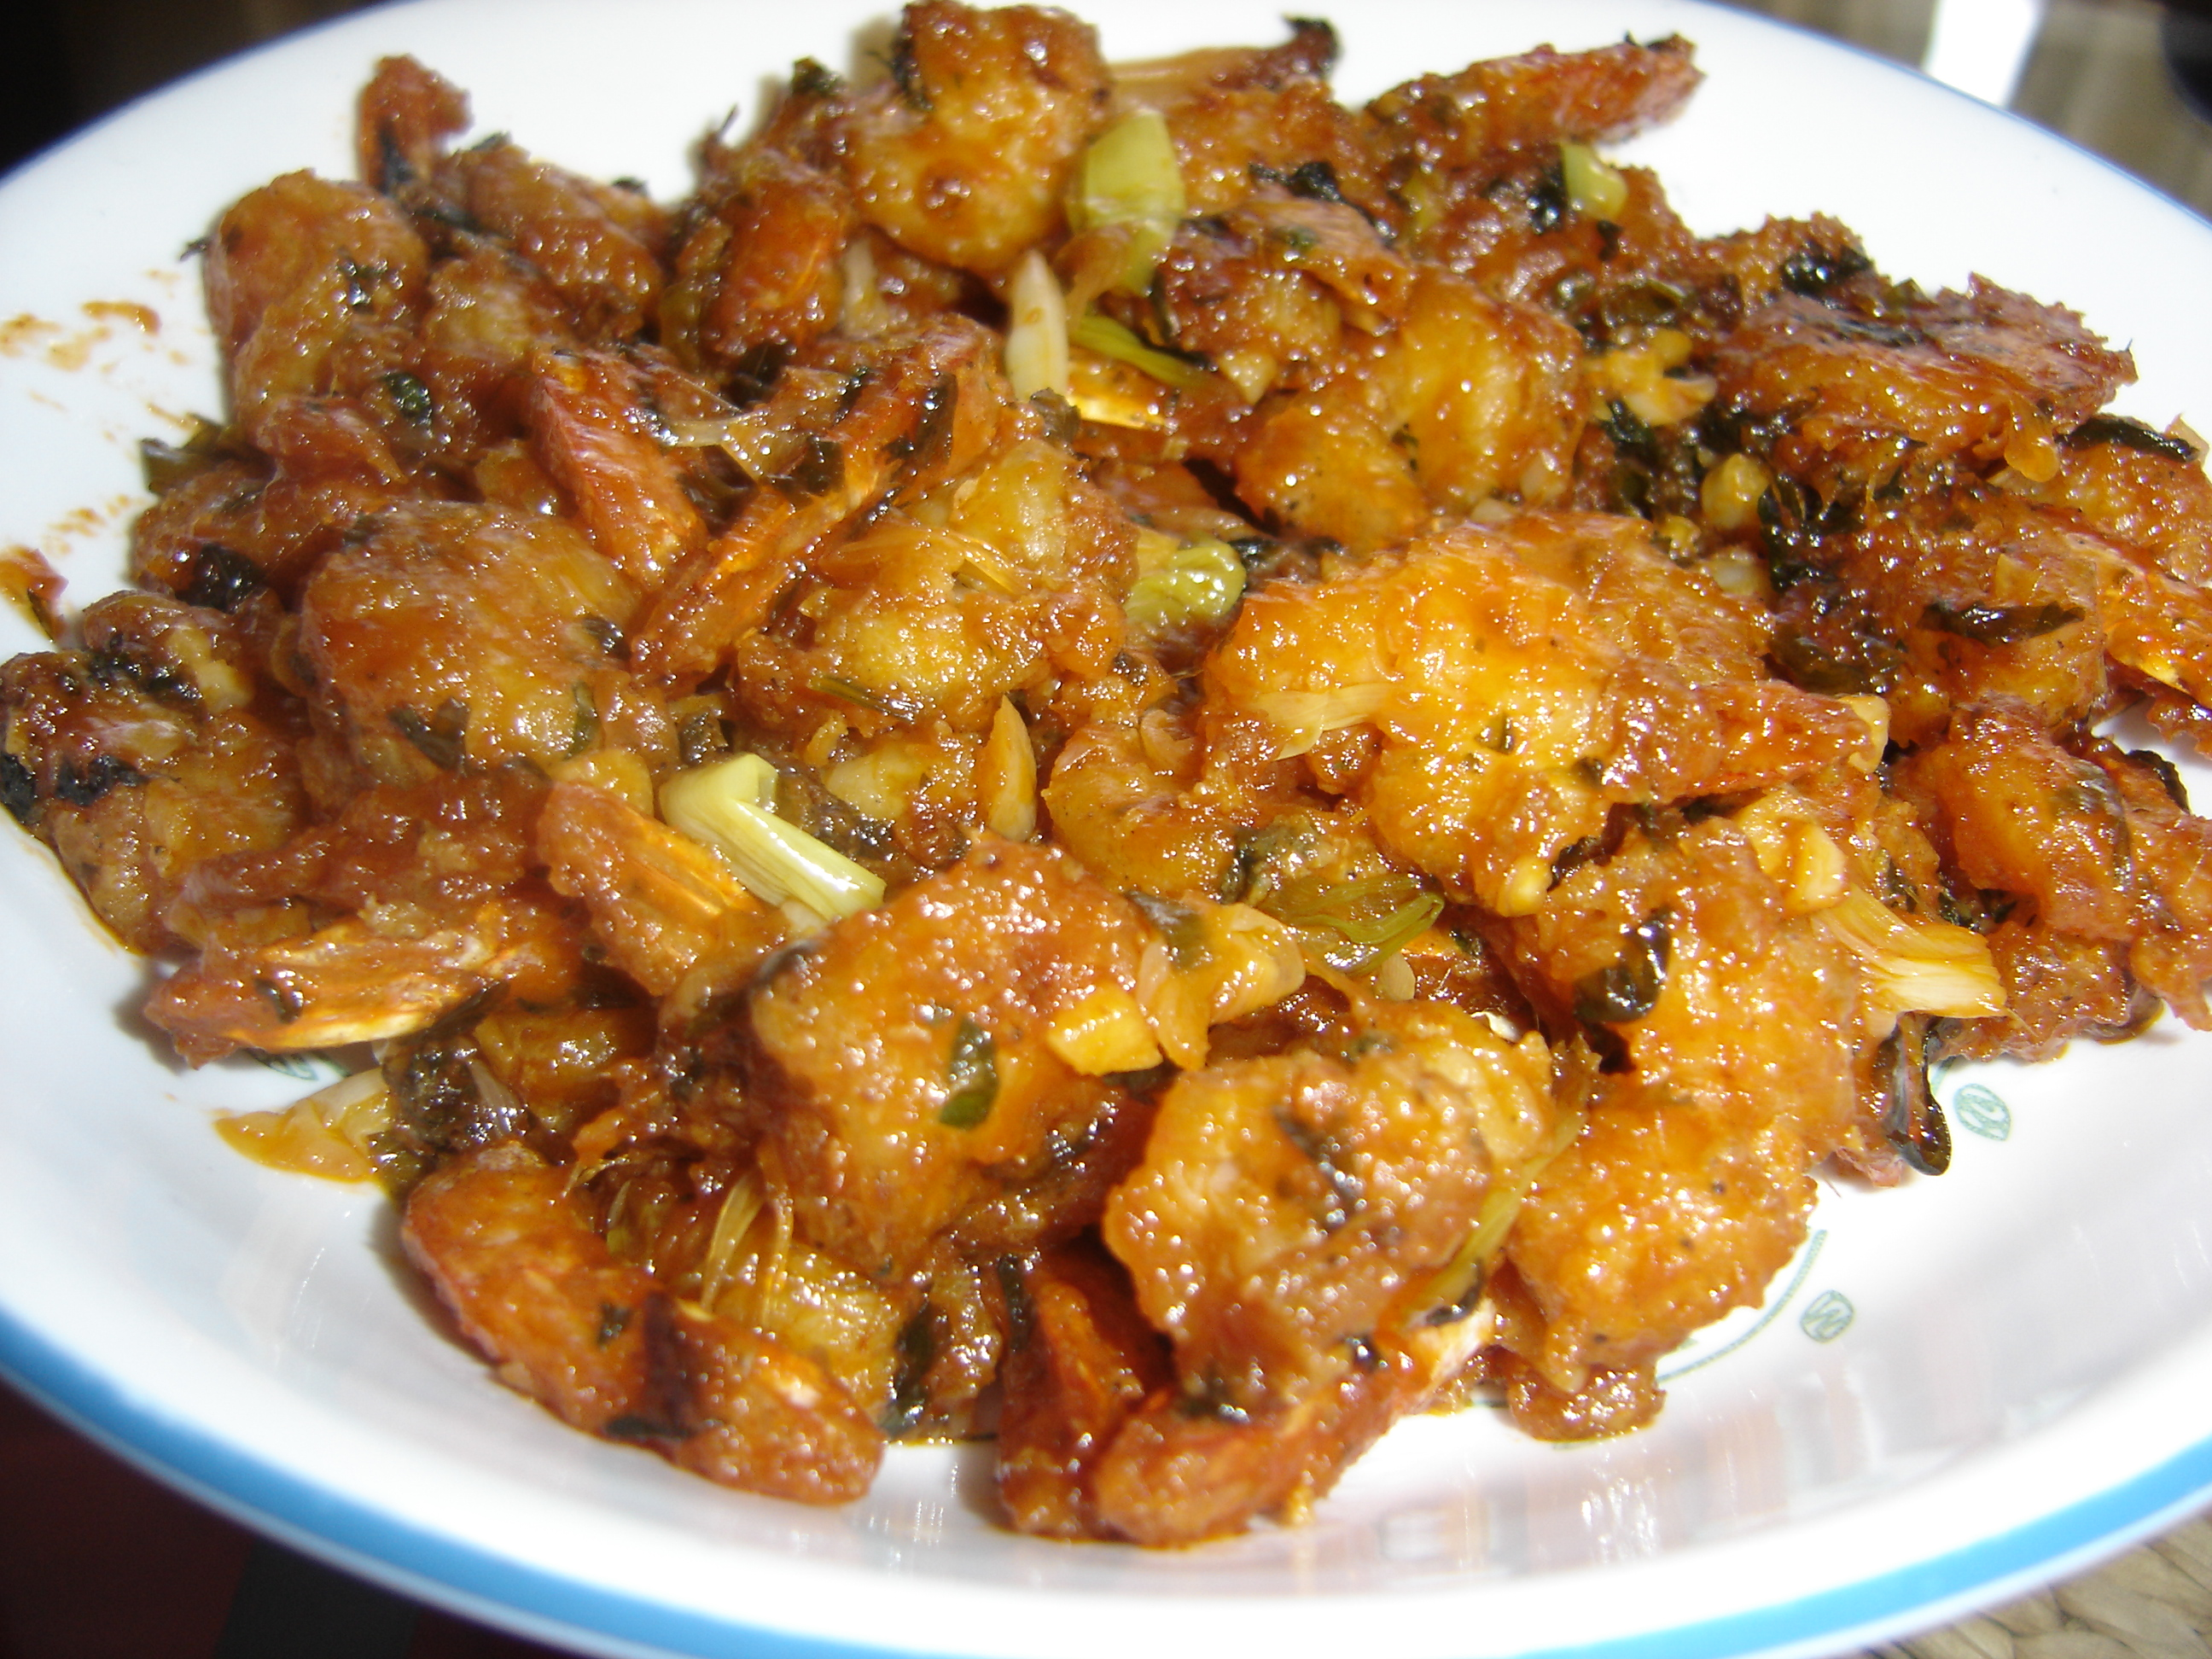 Quick and easy asian shrimp photos and asian shrimp recipes genius quick and easy asian shrimp photos and asian shrimp recipes genius kitchen forumfinder Image collections